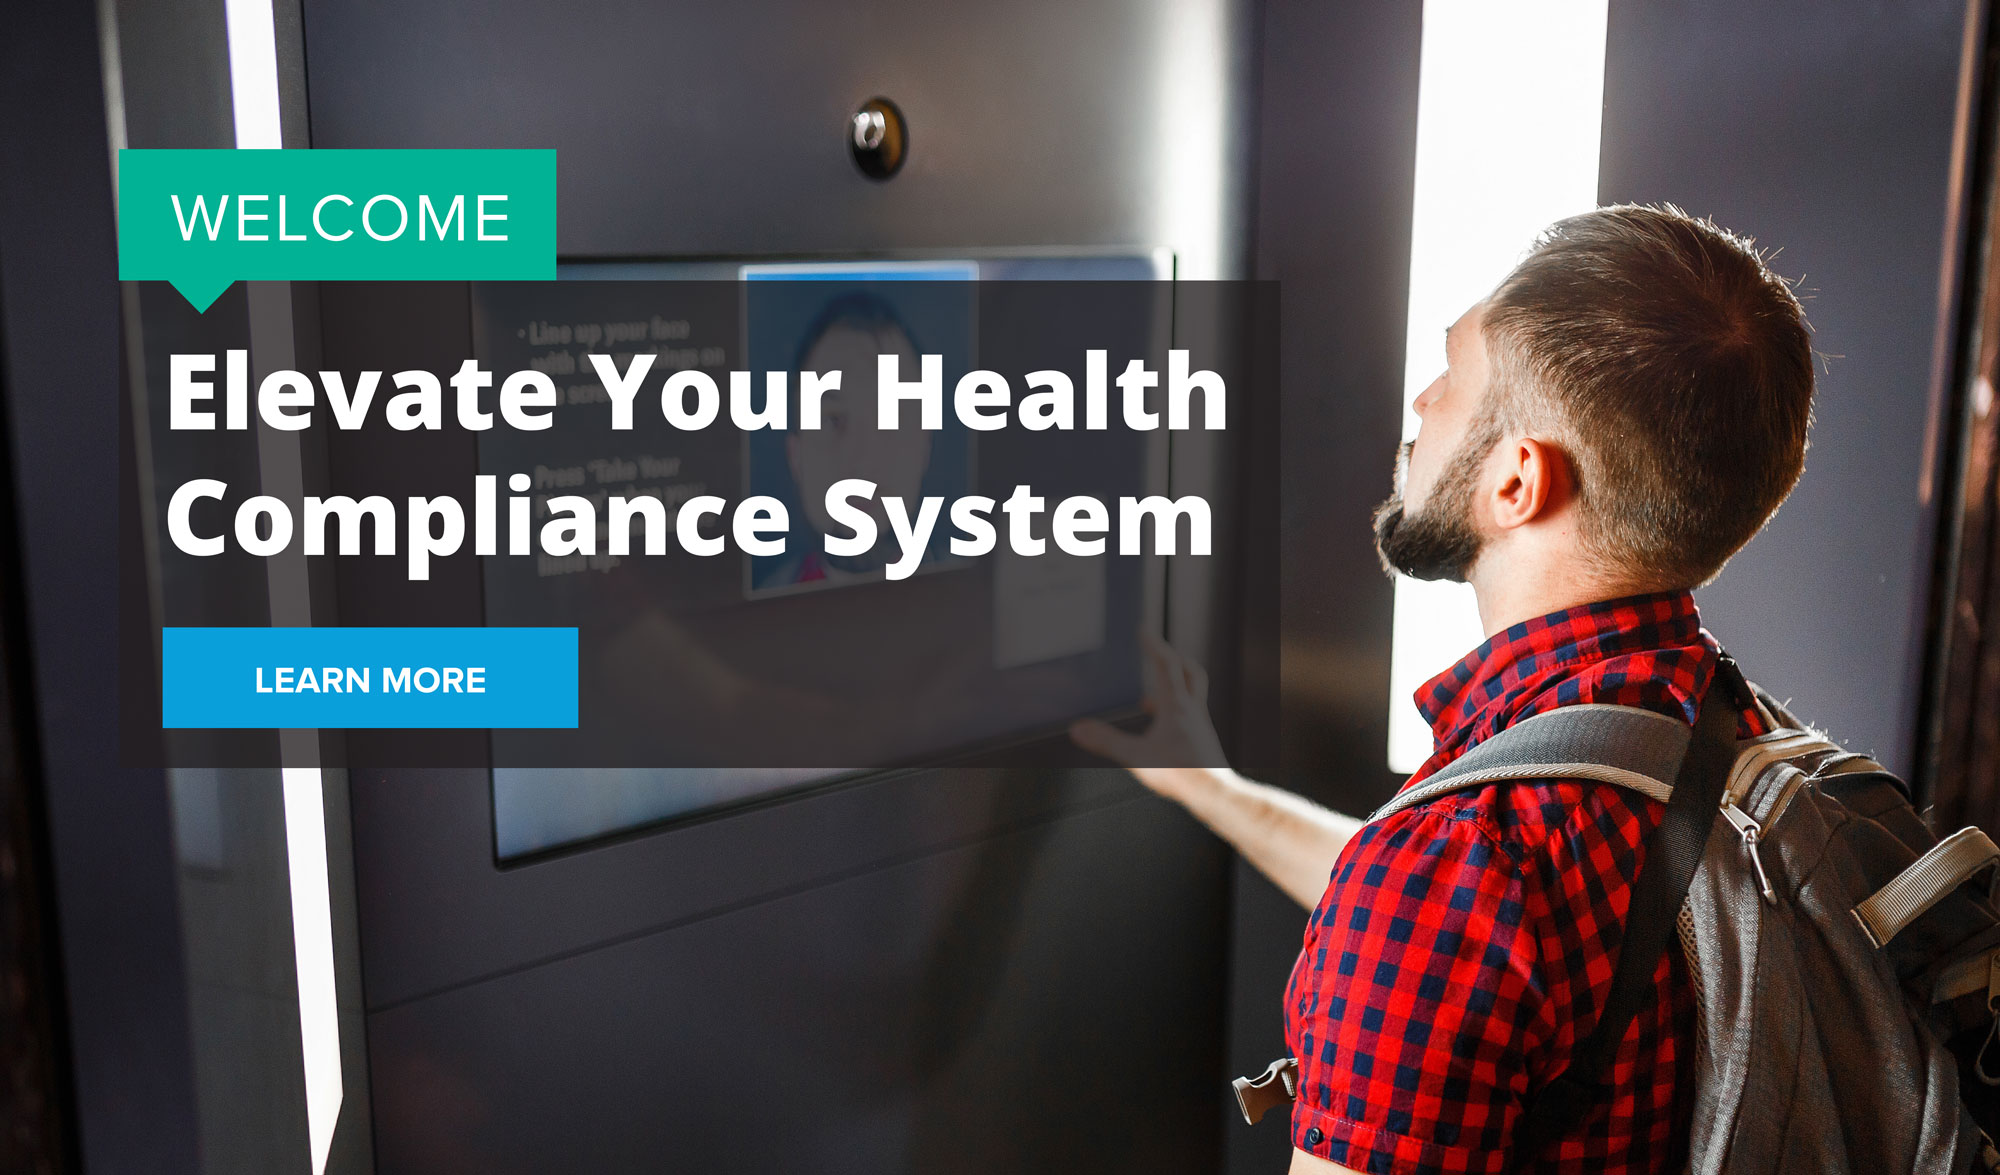 Health Compliance System